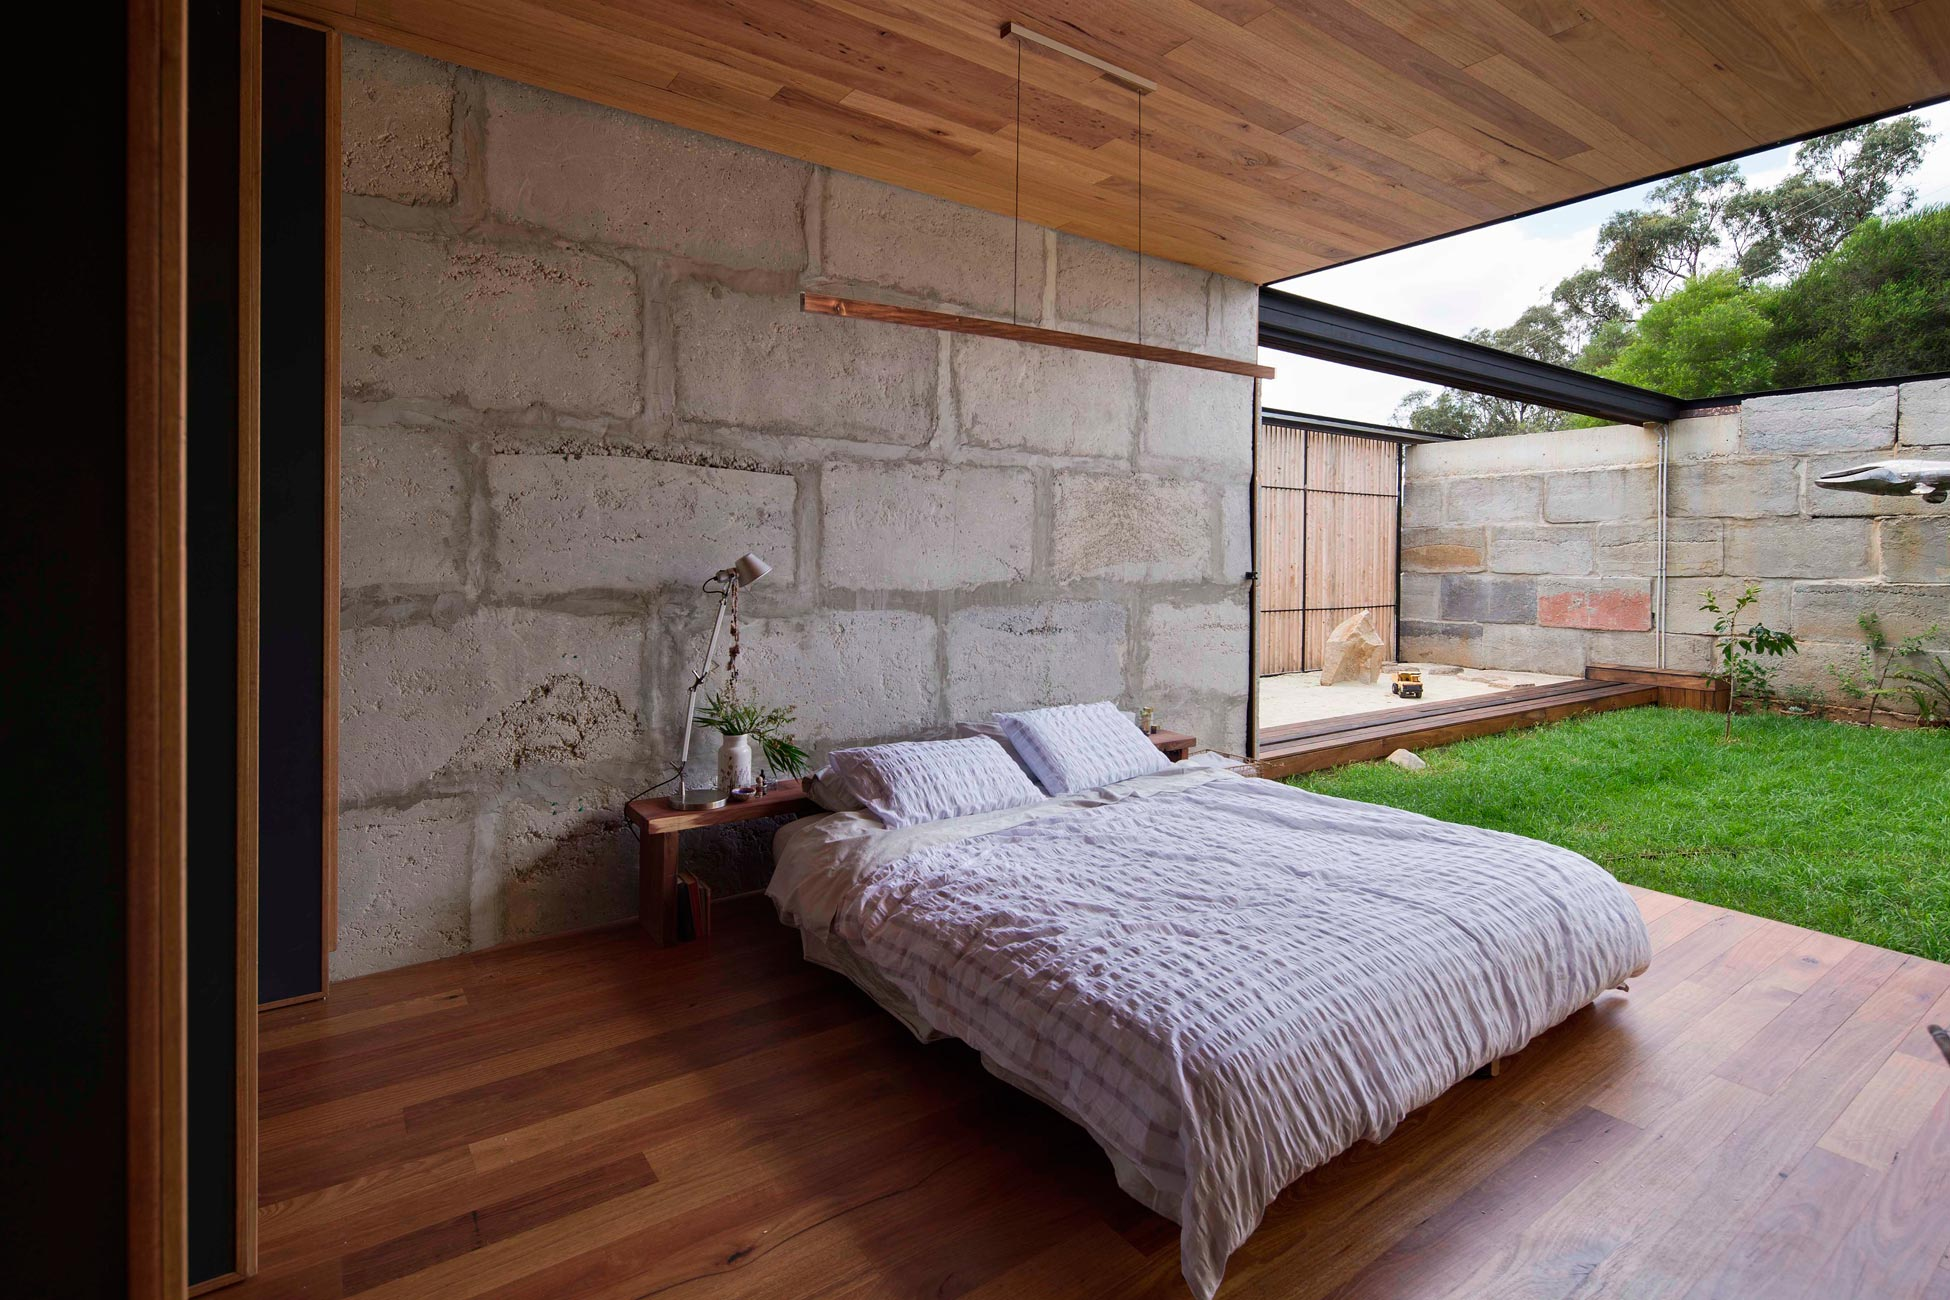 Sawmill House built of Reclaimed Concrete Blocks Used by ARCHIER-27